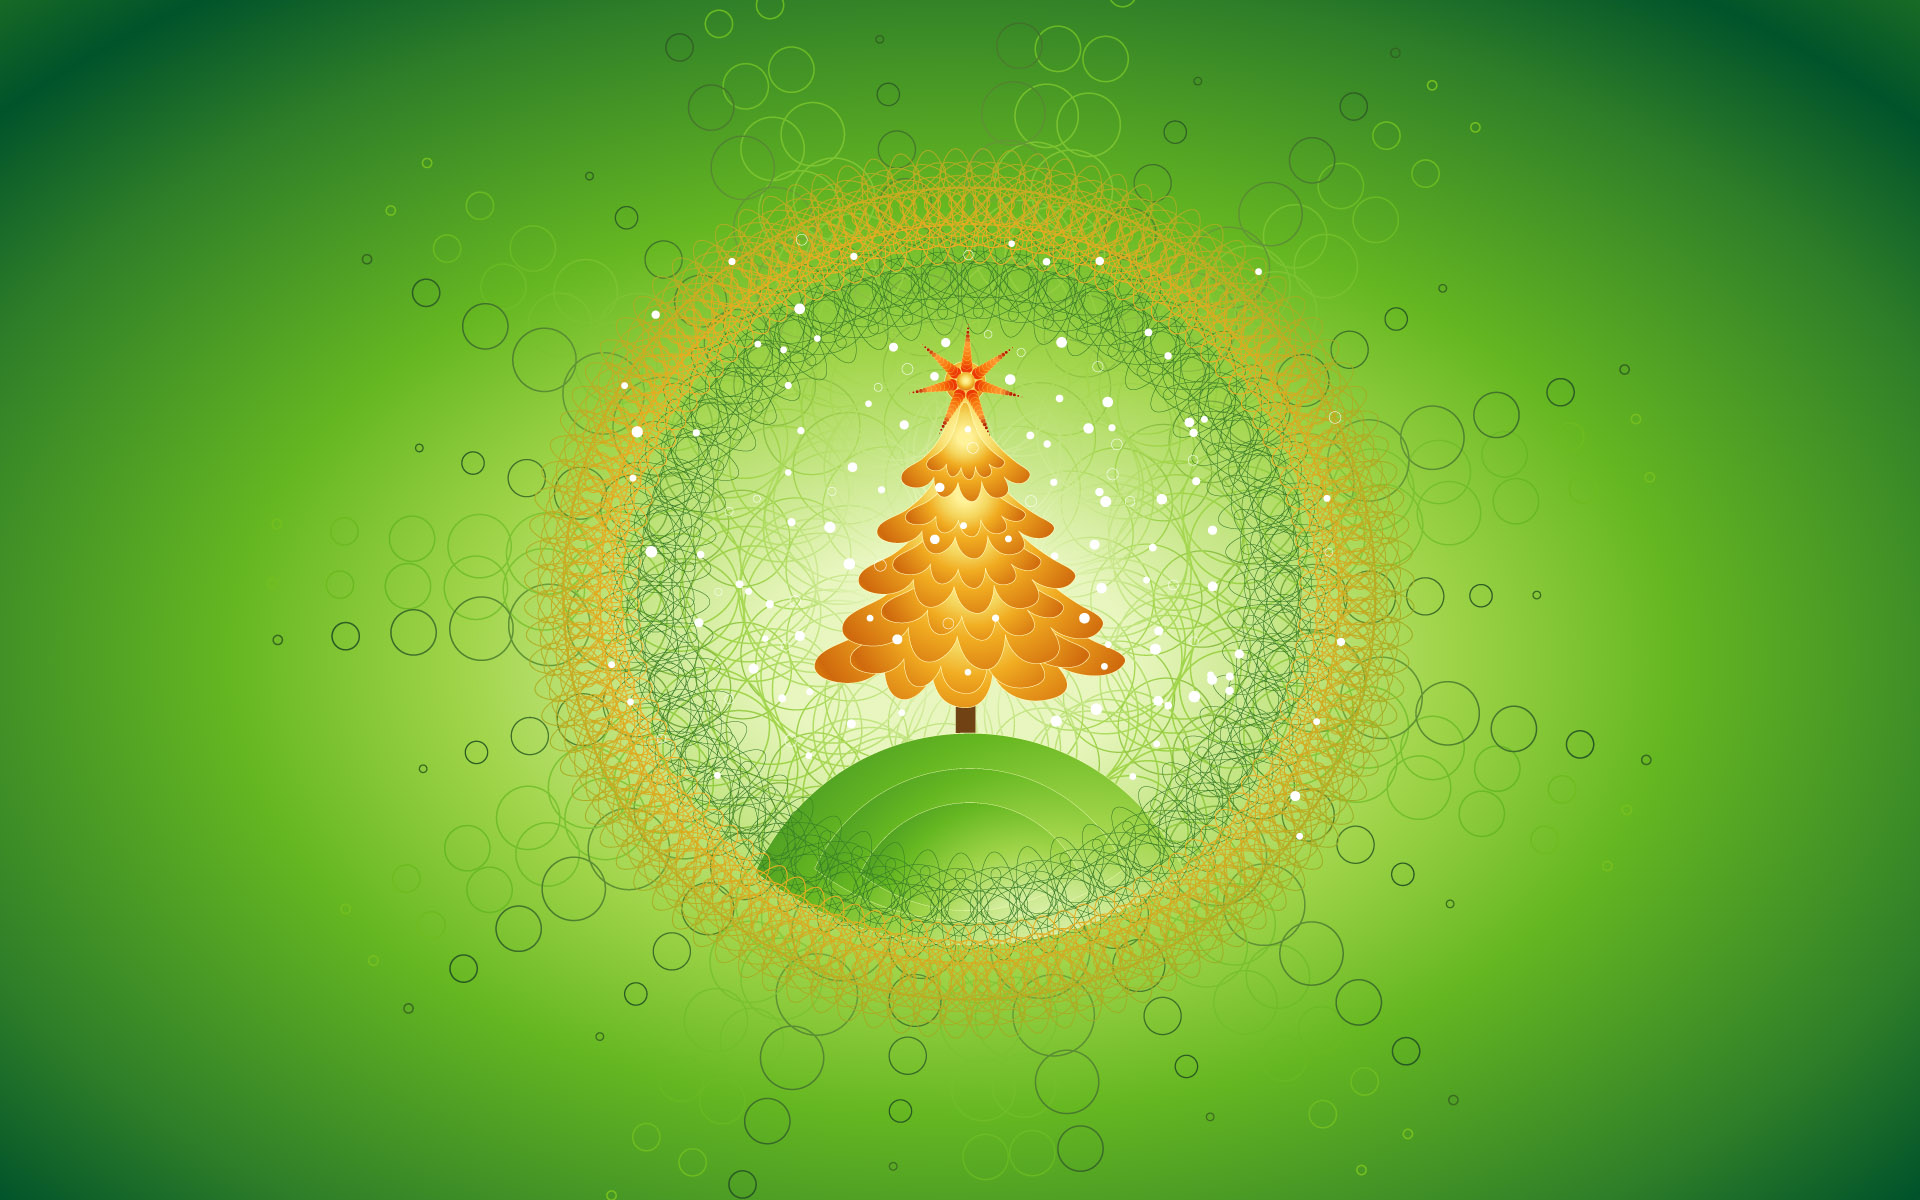 Beautiful Christmas Tree Design 551.43 Kb